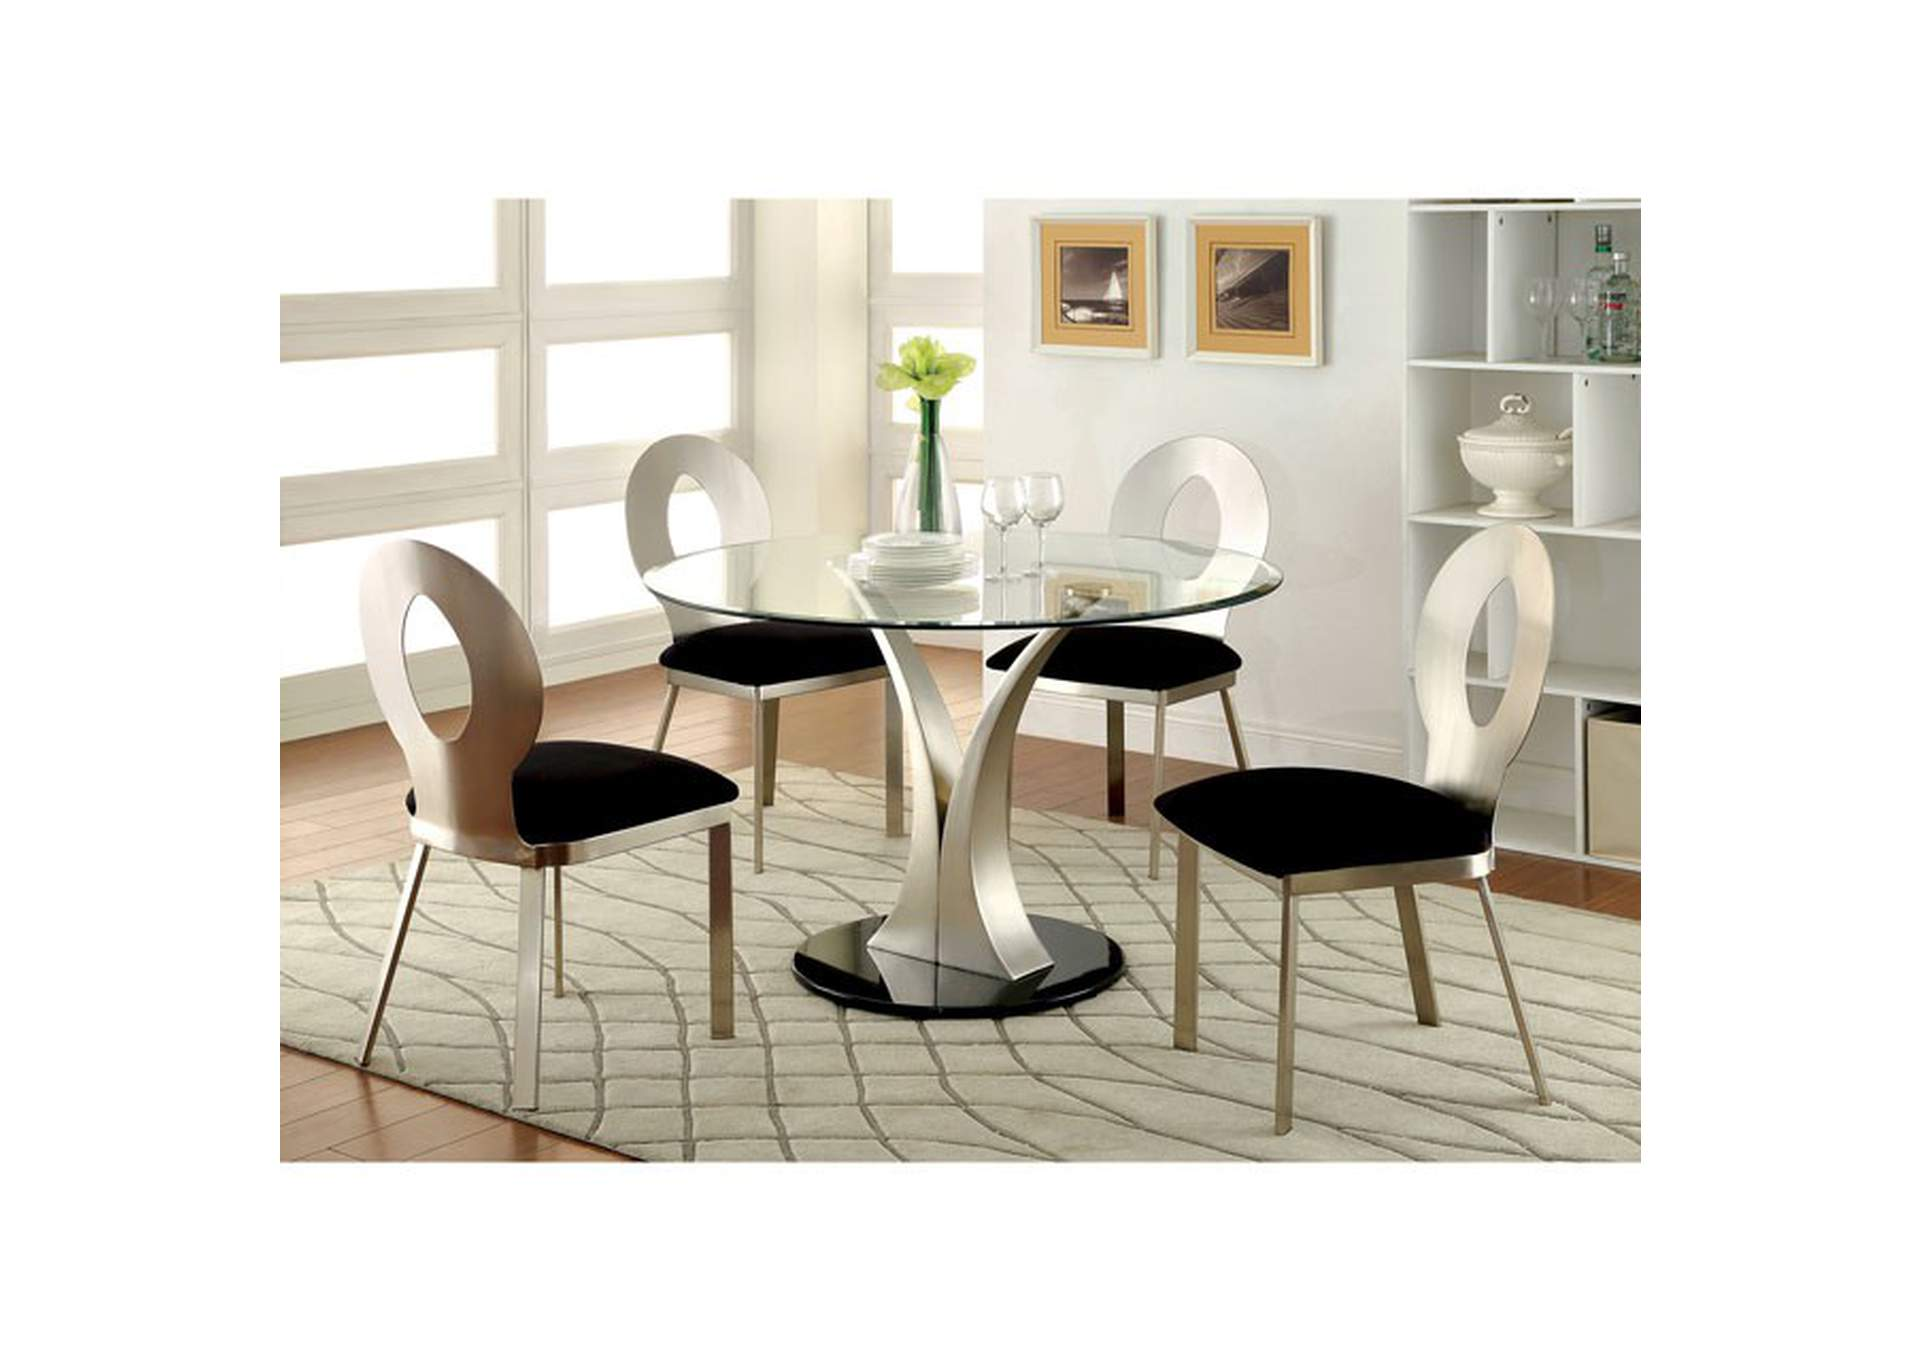 Valo Silver/Black Dining Table w/Glass Top,Furniture of America